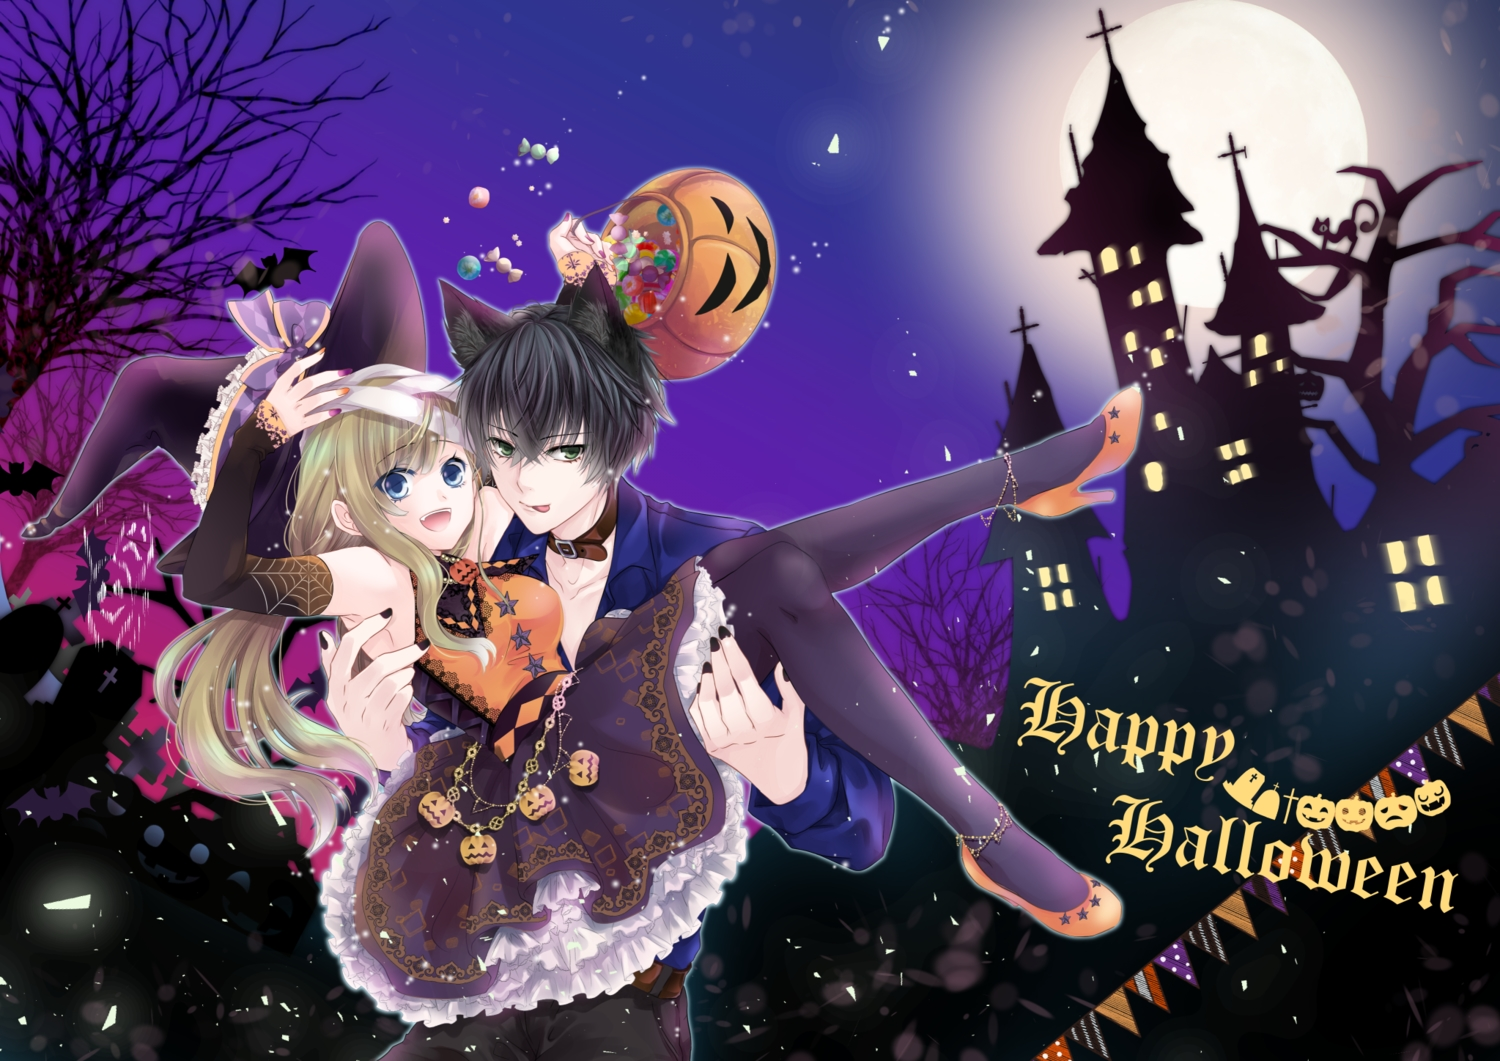 aliasing animal_ears black_hair blue_eyes brown_hair candy choker dress green_eyes halloween hat ikemen_revolution long_hair male moon night pumpkin ray_blackwell short_hair tagme_(character) tsukiya_(joan) witch_hat